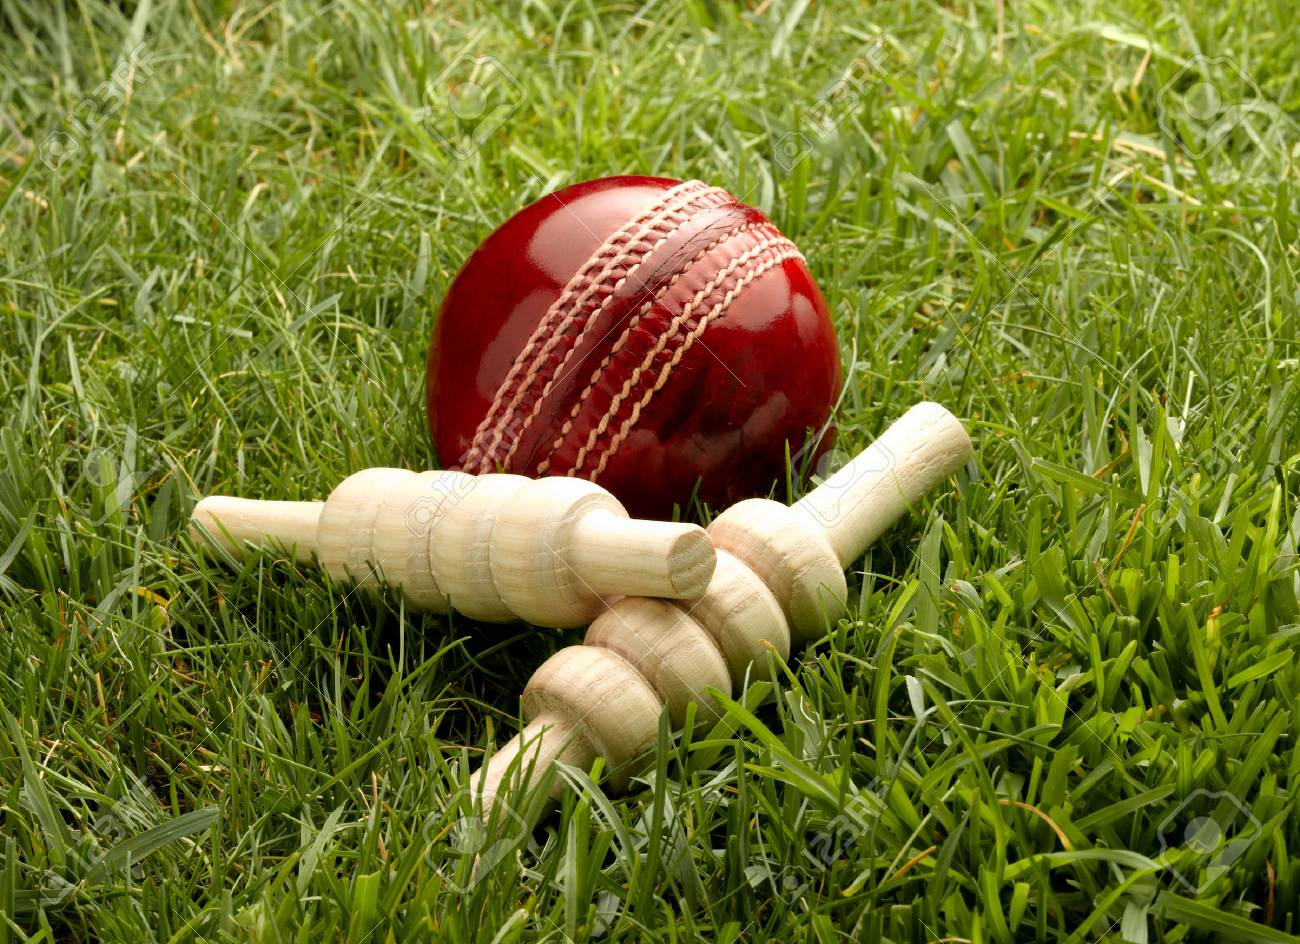 Red Leather Cricket Ball with Bailes - 34046770